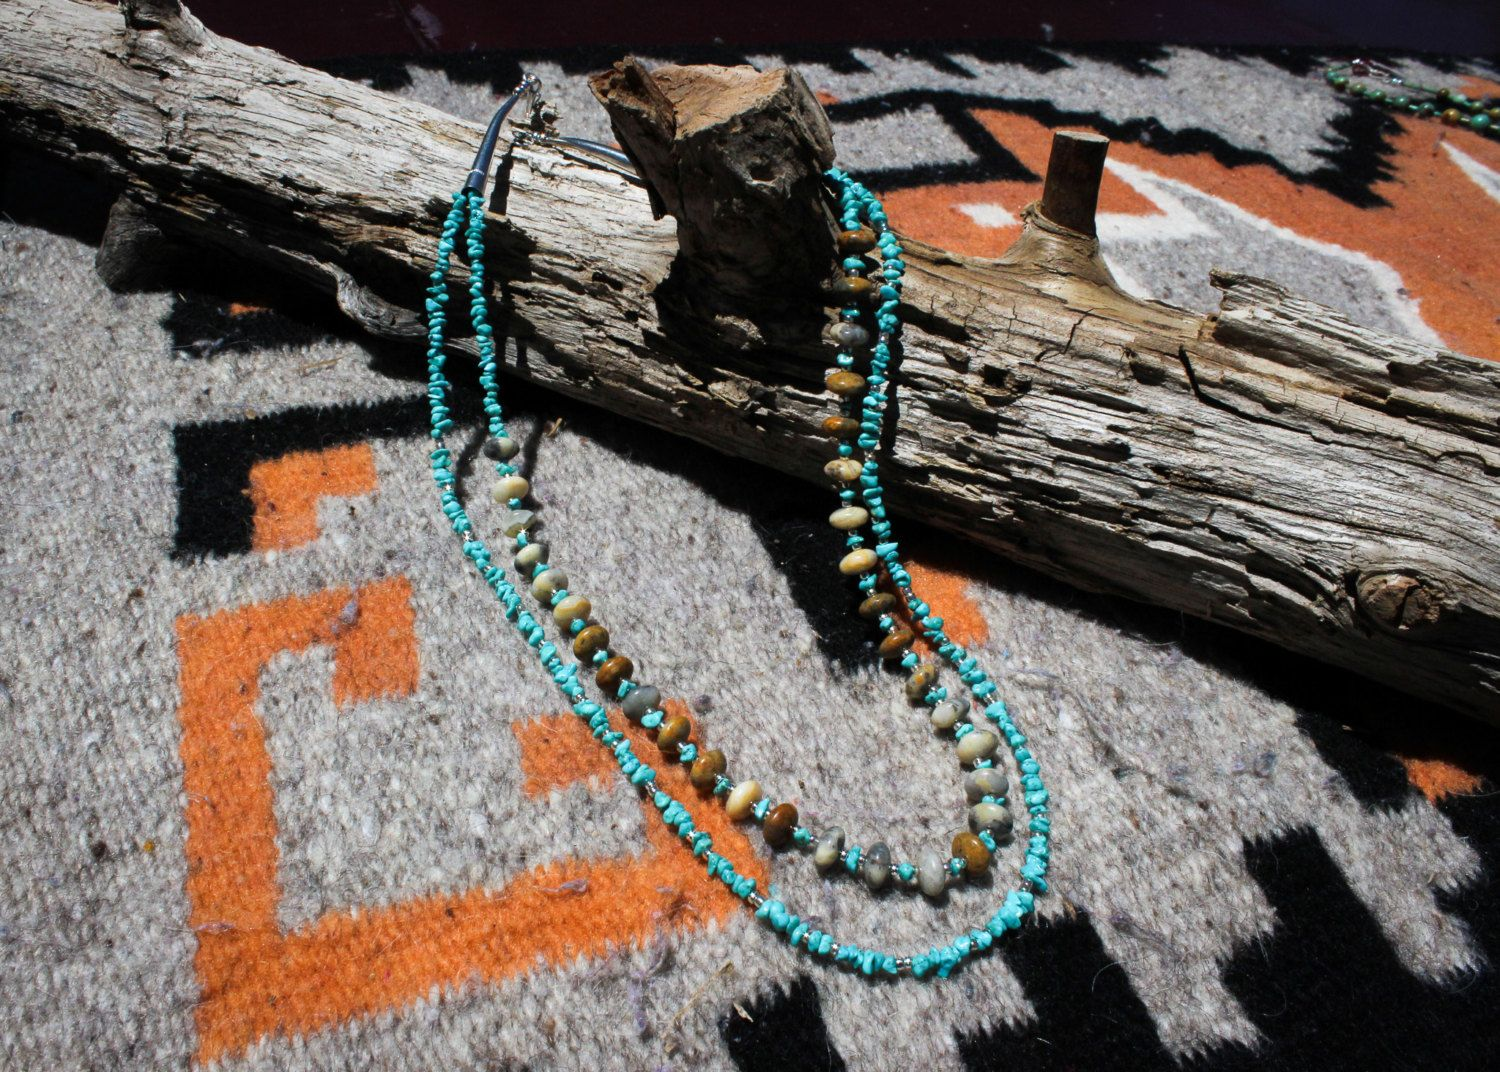 Kingman Turquoise Chips and Crazy Lace Agate Rondelles 2-Strand Necklace by NativeAmericanBling on Etsy